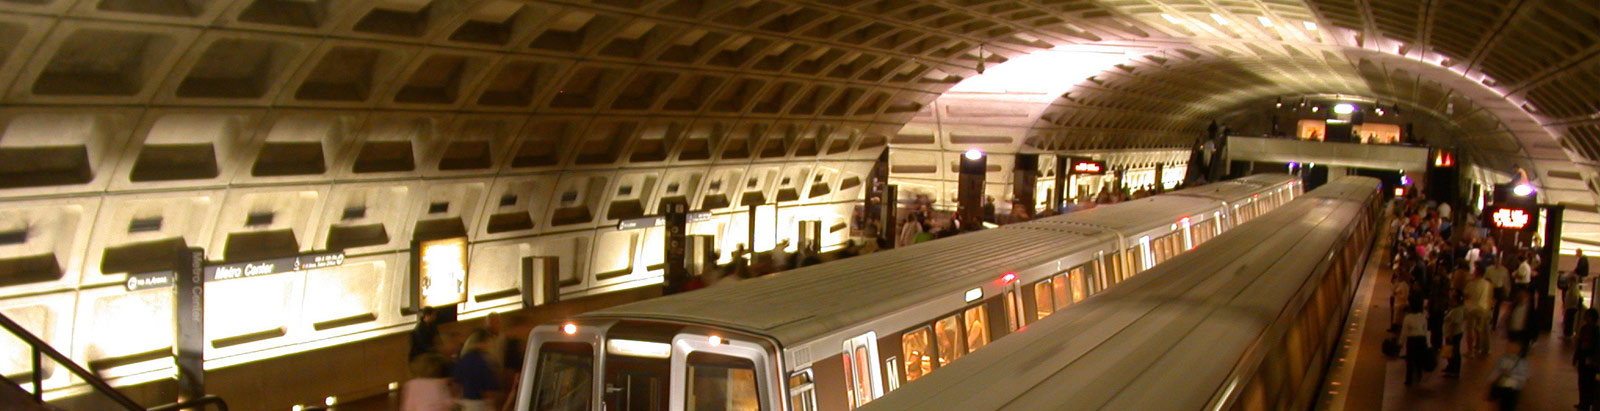 Getting-Around-Dc-Metro